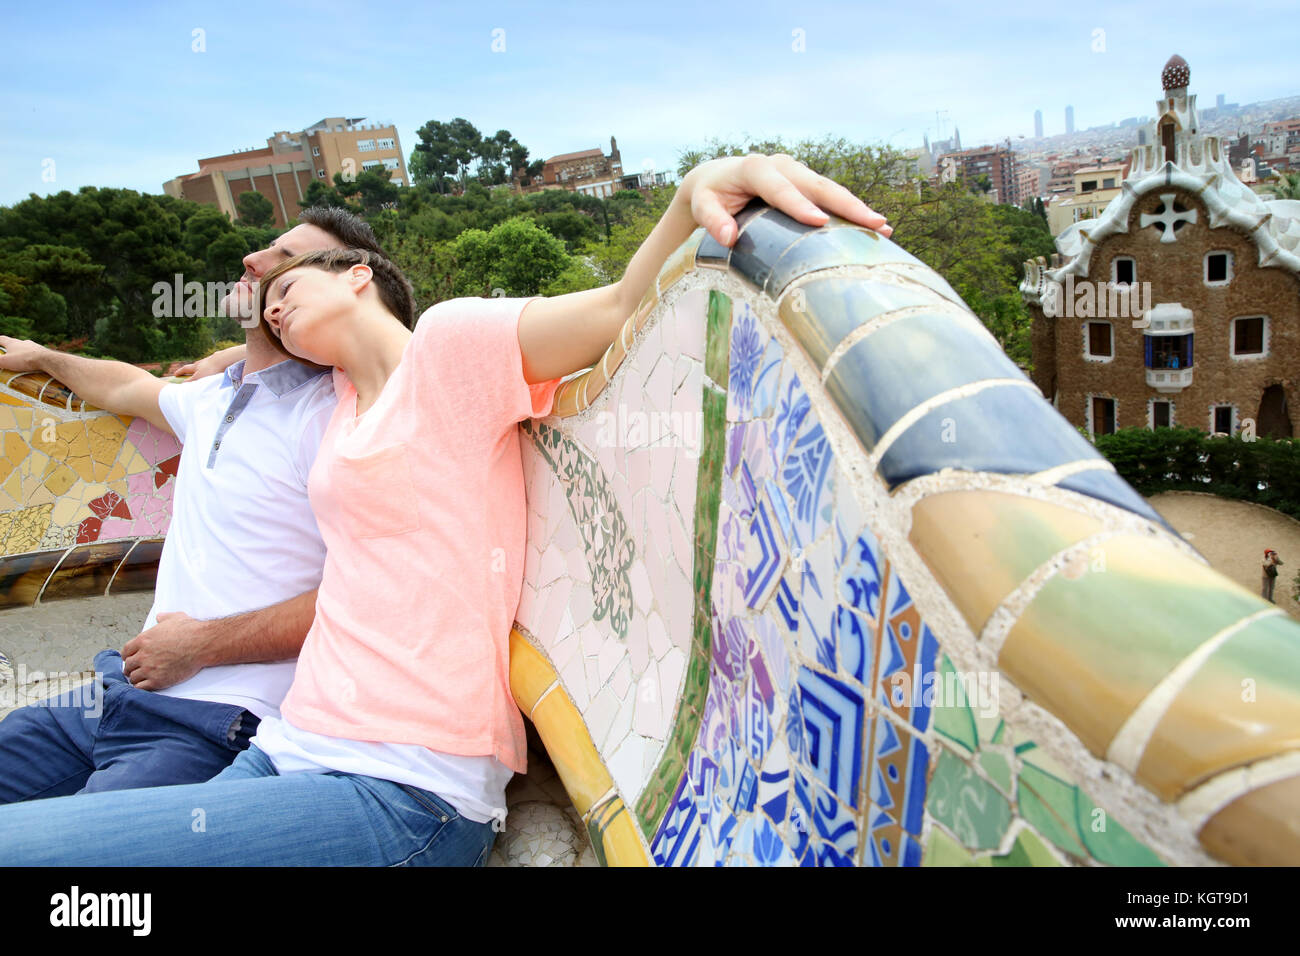 Couple of tourists relaxing on Guell Park bench - Stock Image